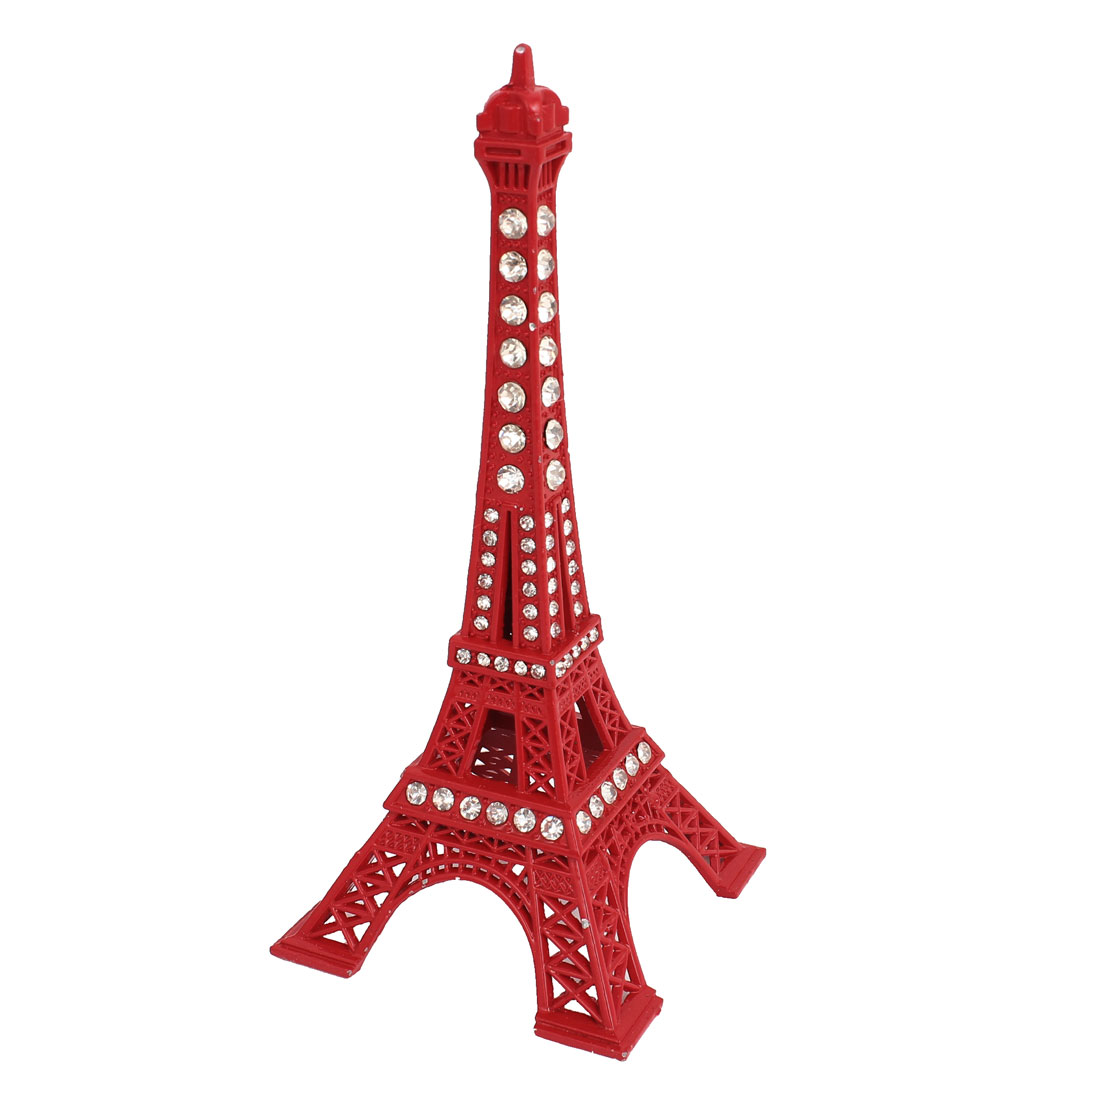 "Red 5.1"" Height France Miniature Eiffel Tower Sculpture Model Ornament"